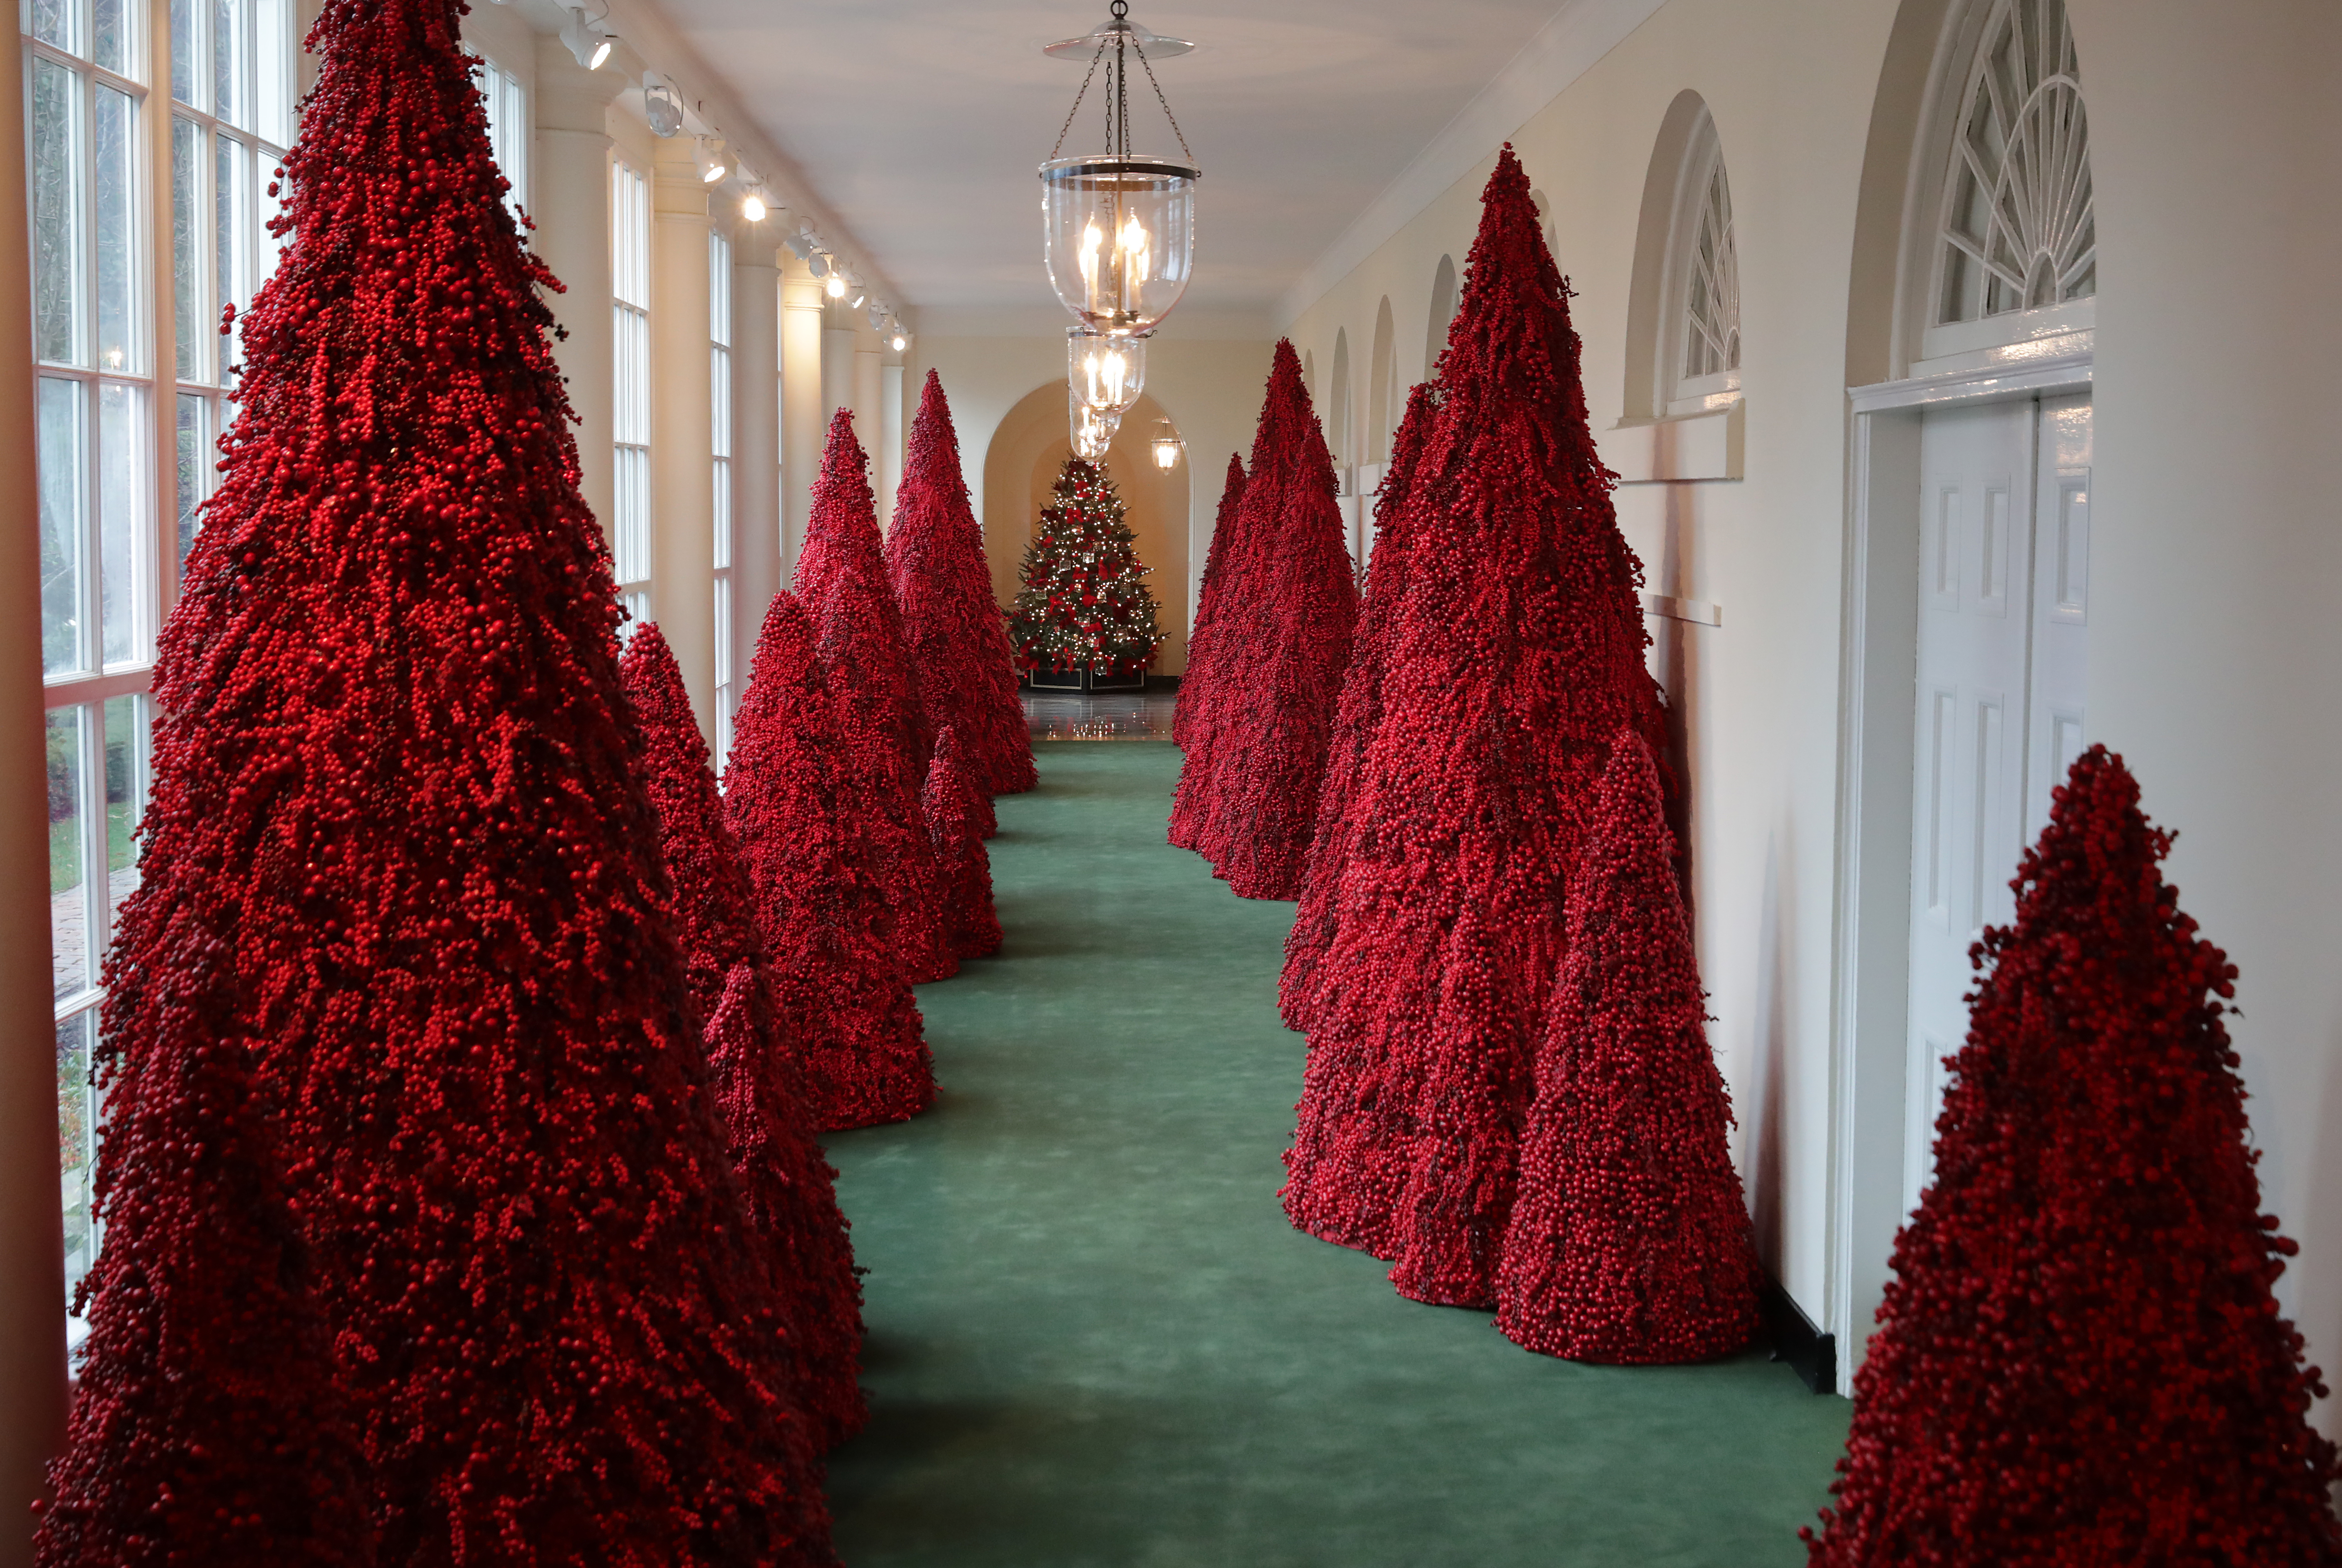 More than 40 red topiary trees line the East colonnade as part of the holiday decorations at the White House November 26, 2018 in Washington, DC. (Credit: Chip Somodevilla/Getty Images)